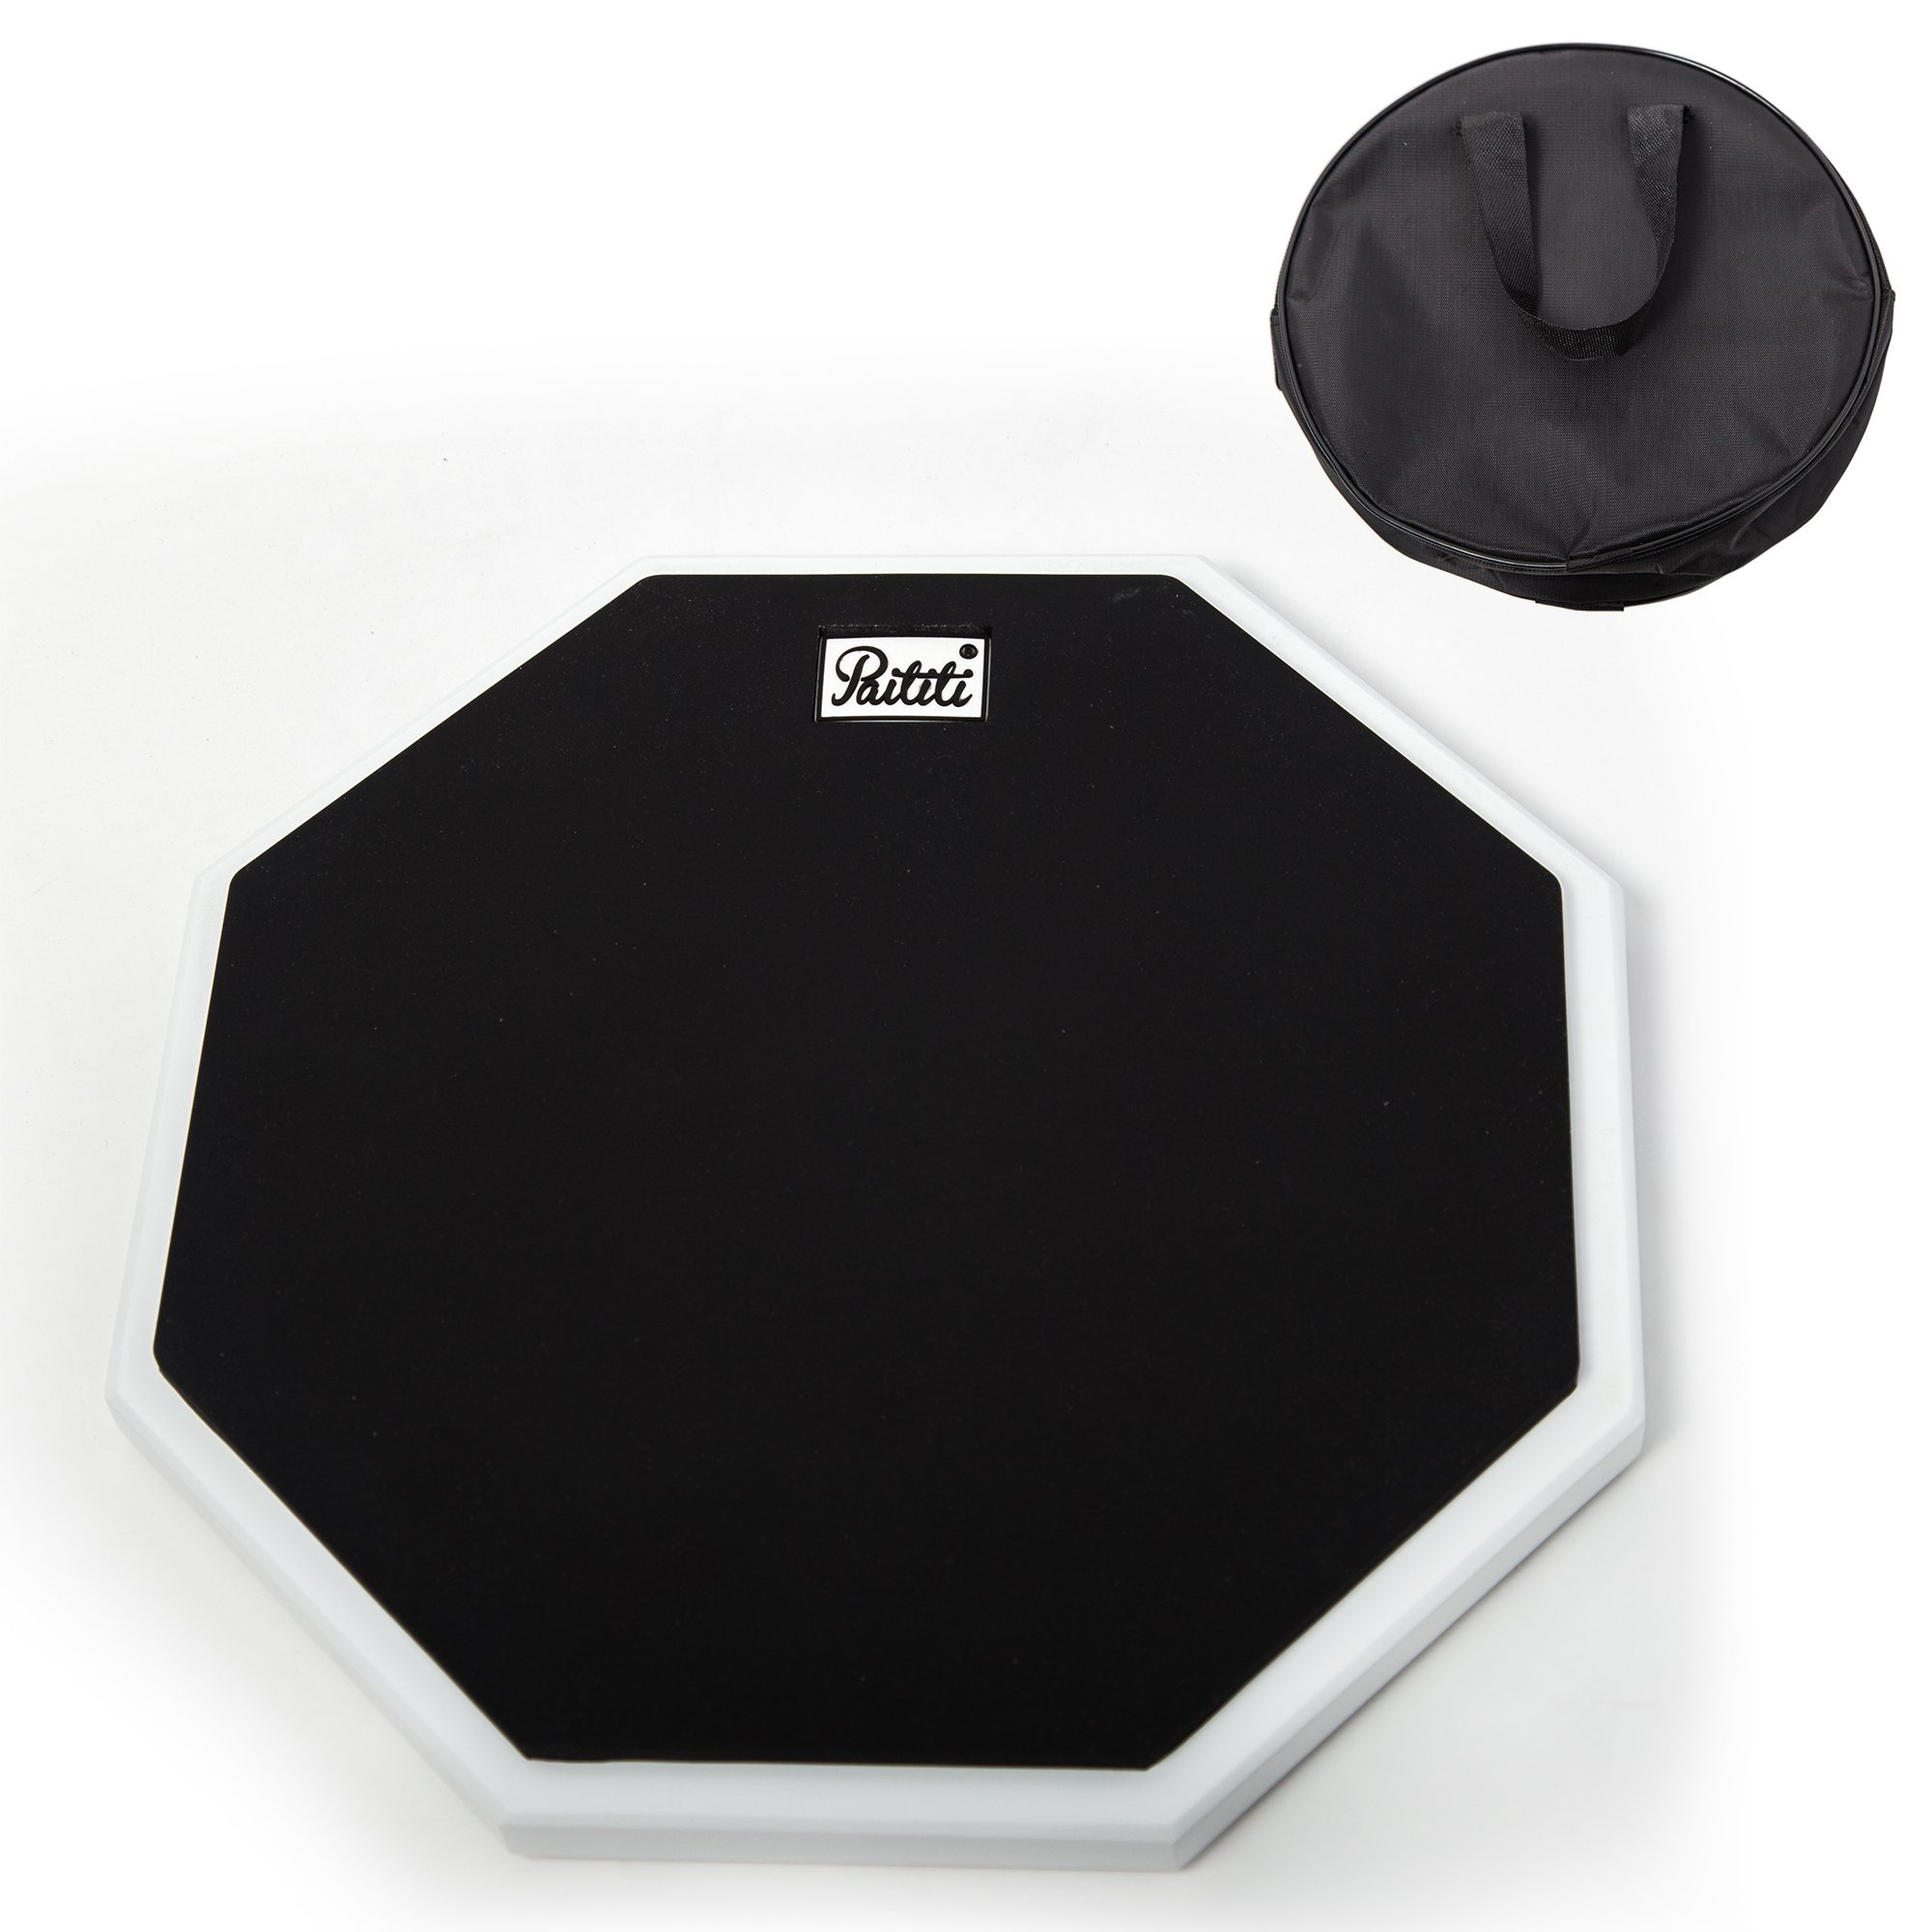 PAITITI 10 Inch Silent Portable Practice Drum Pad Octagonal Shape with Carrying Bag Black Color